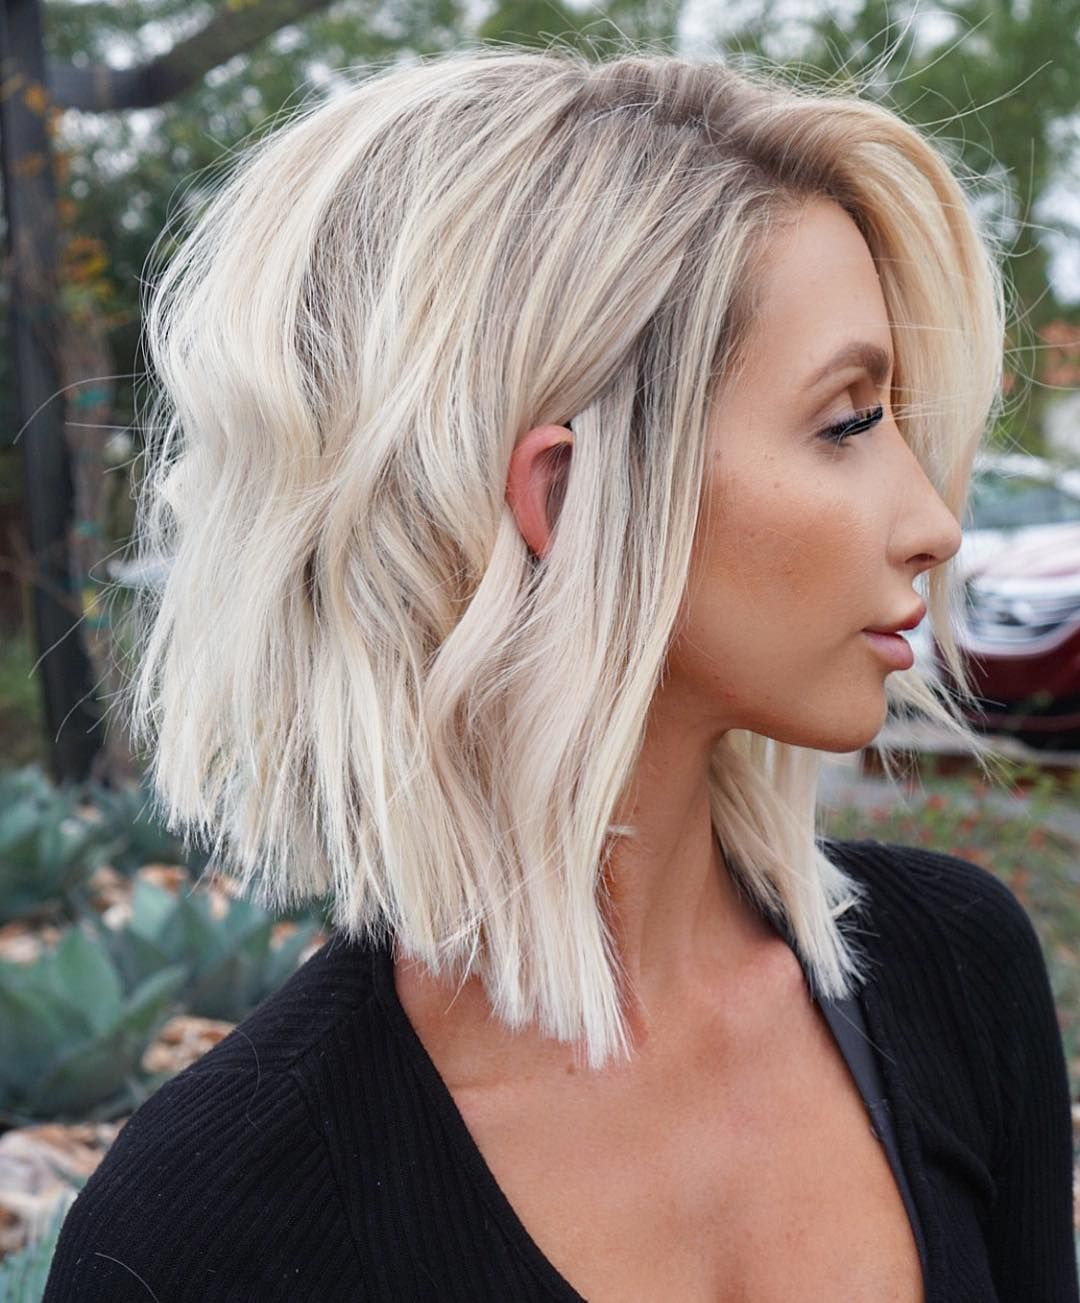 hair style for layer cut 5 945 likes 183 comments hair maggiemh on instagram 5945